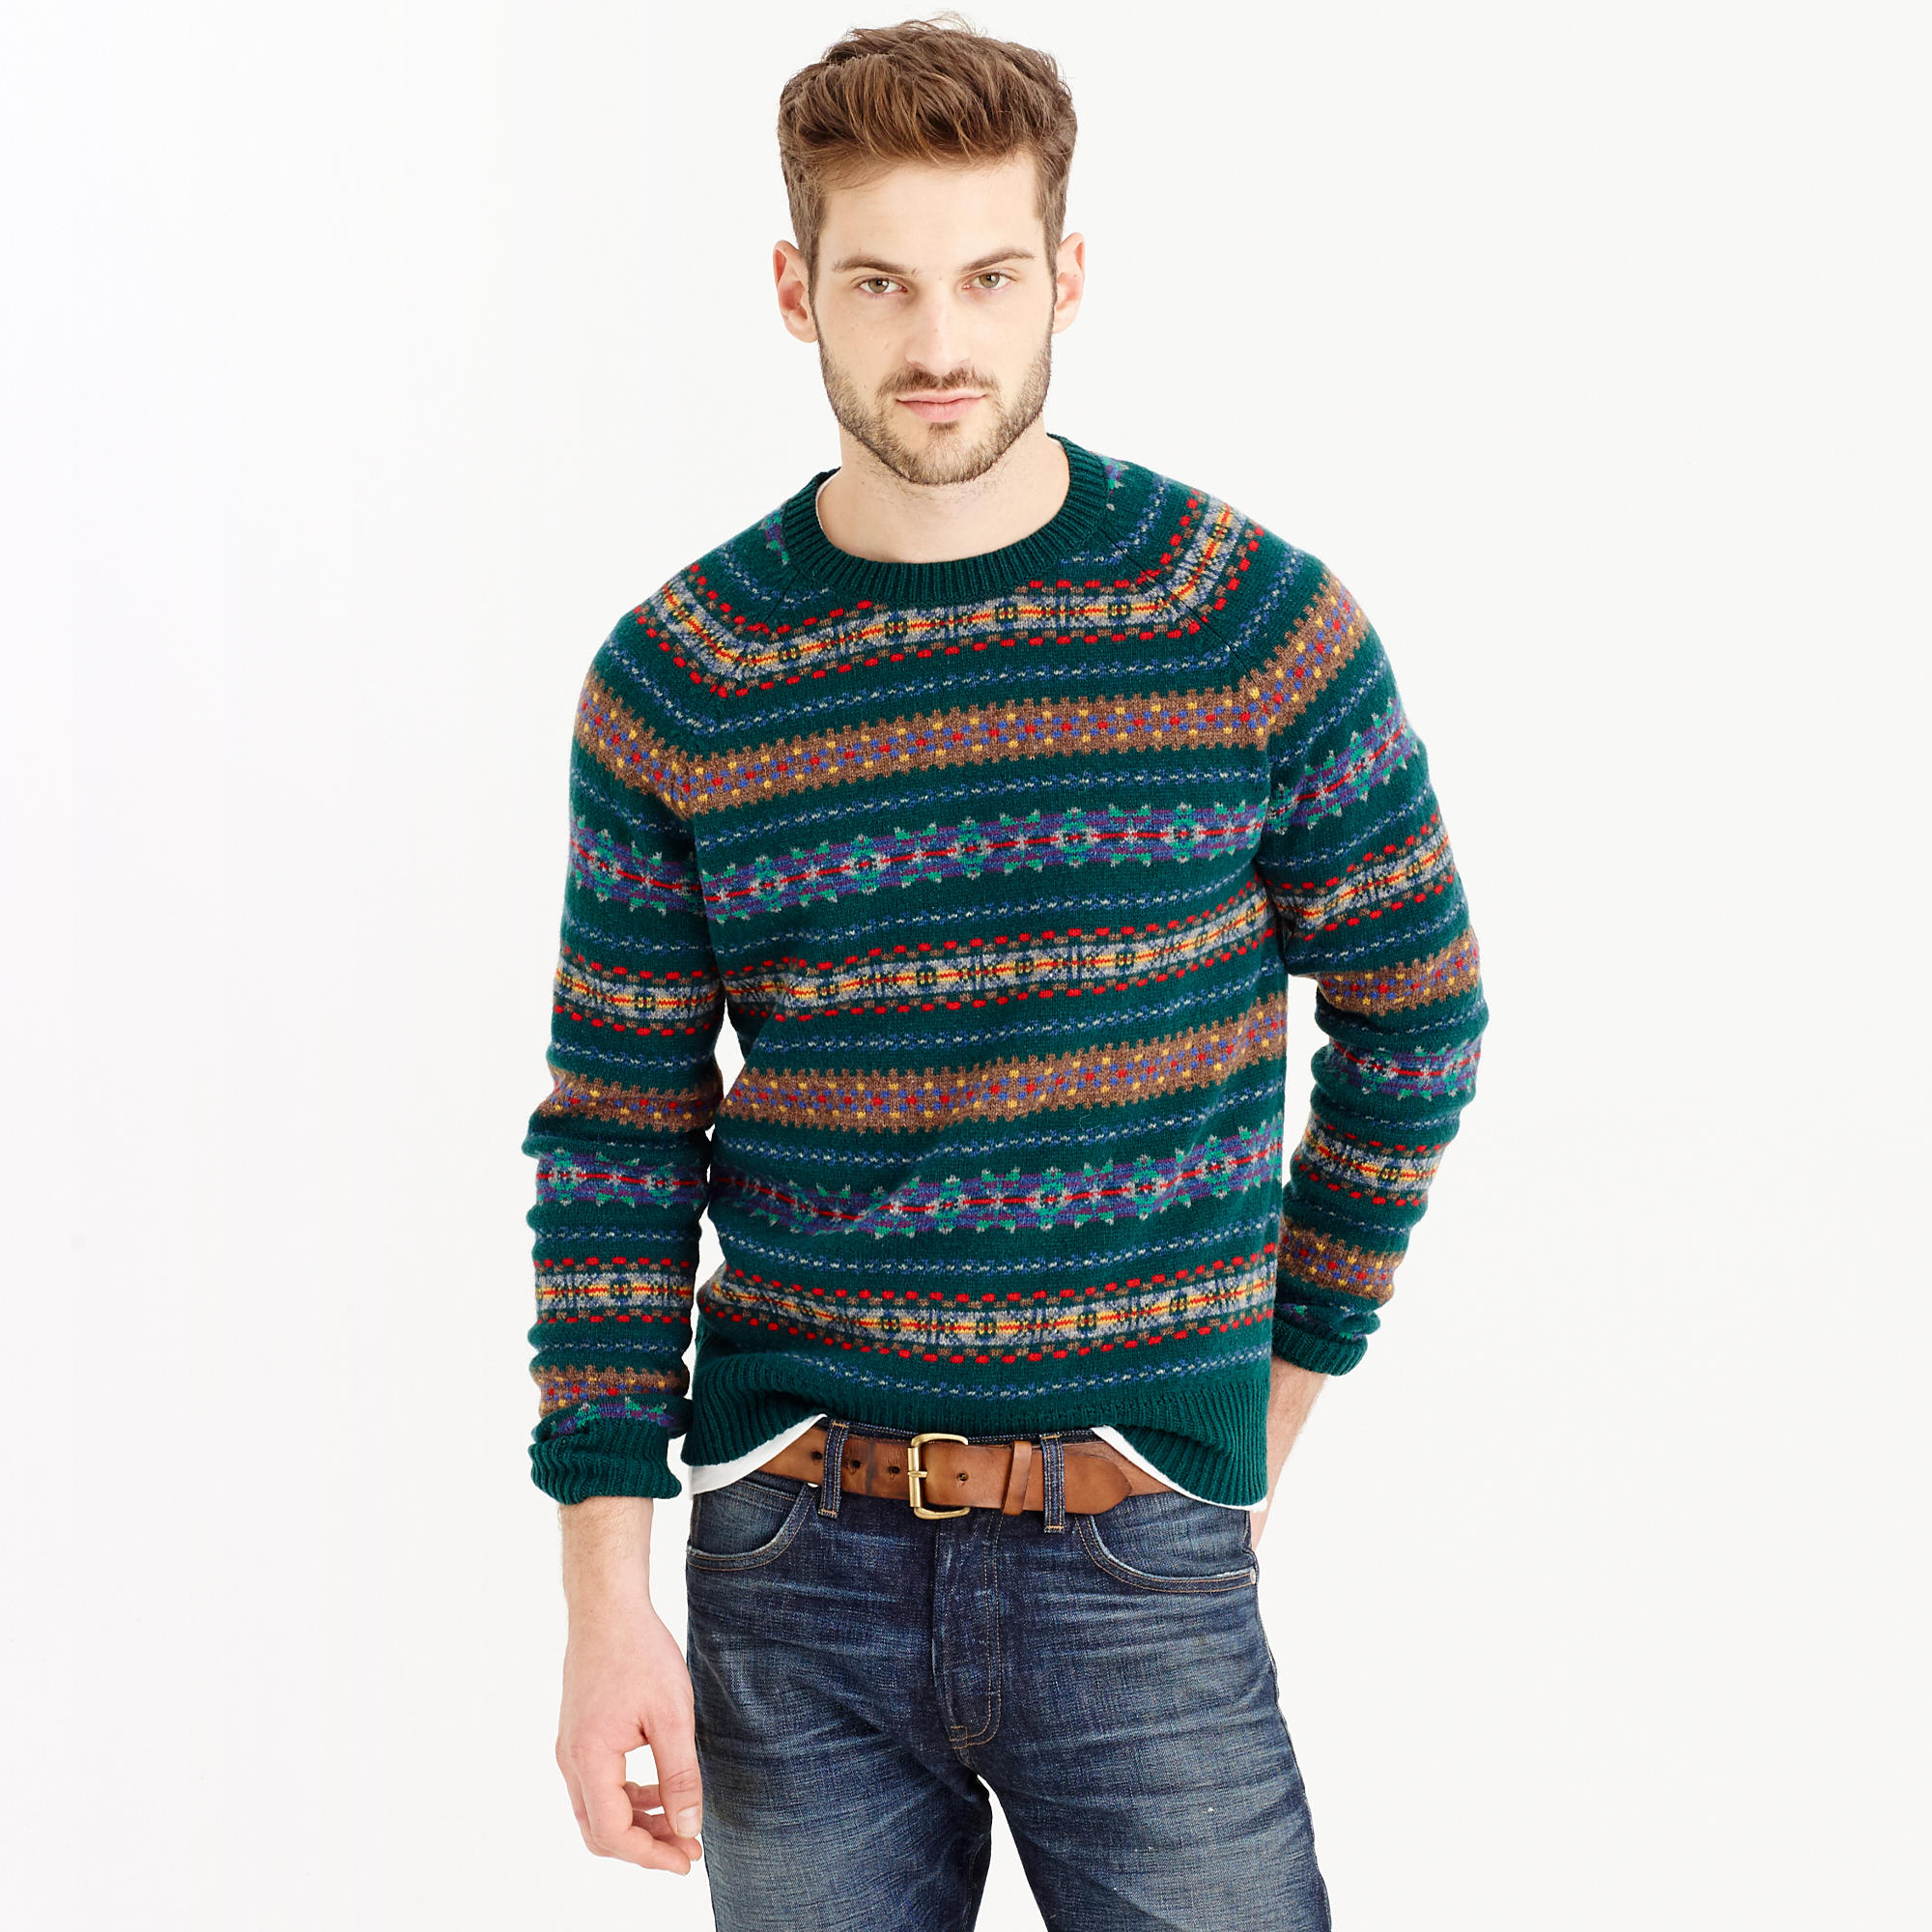 Fair Isle Sweater | Fair Isle Knitwear for Sale | Joie Fair Isle Sweater